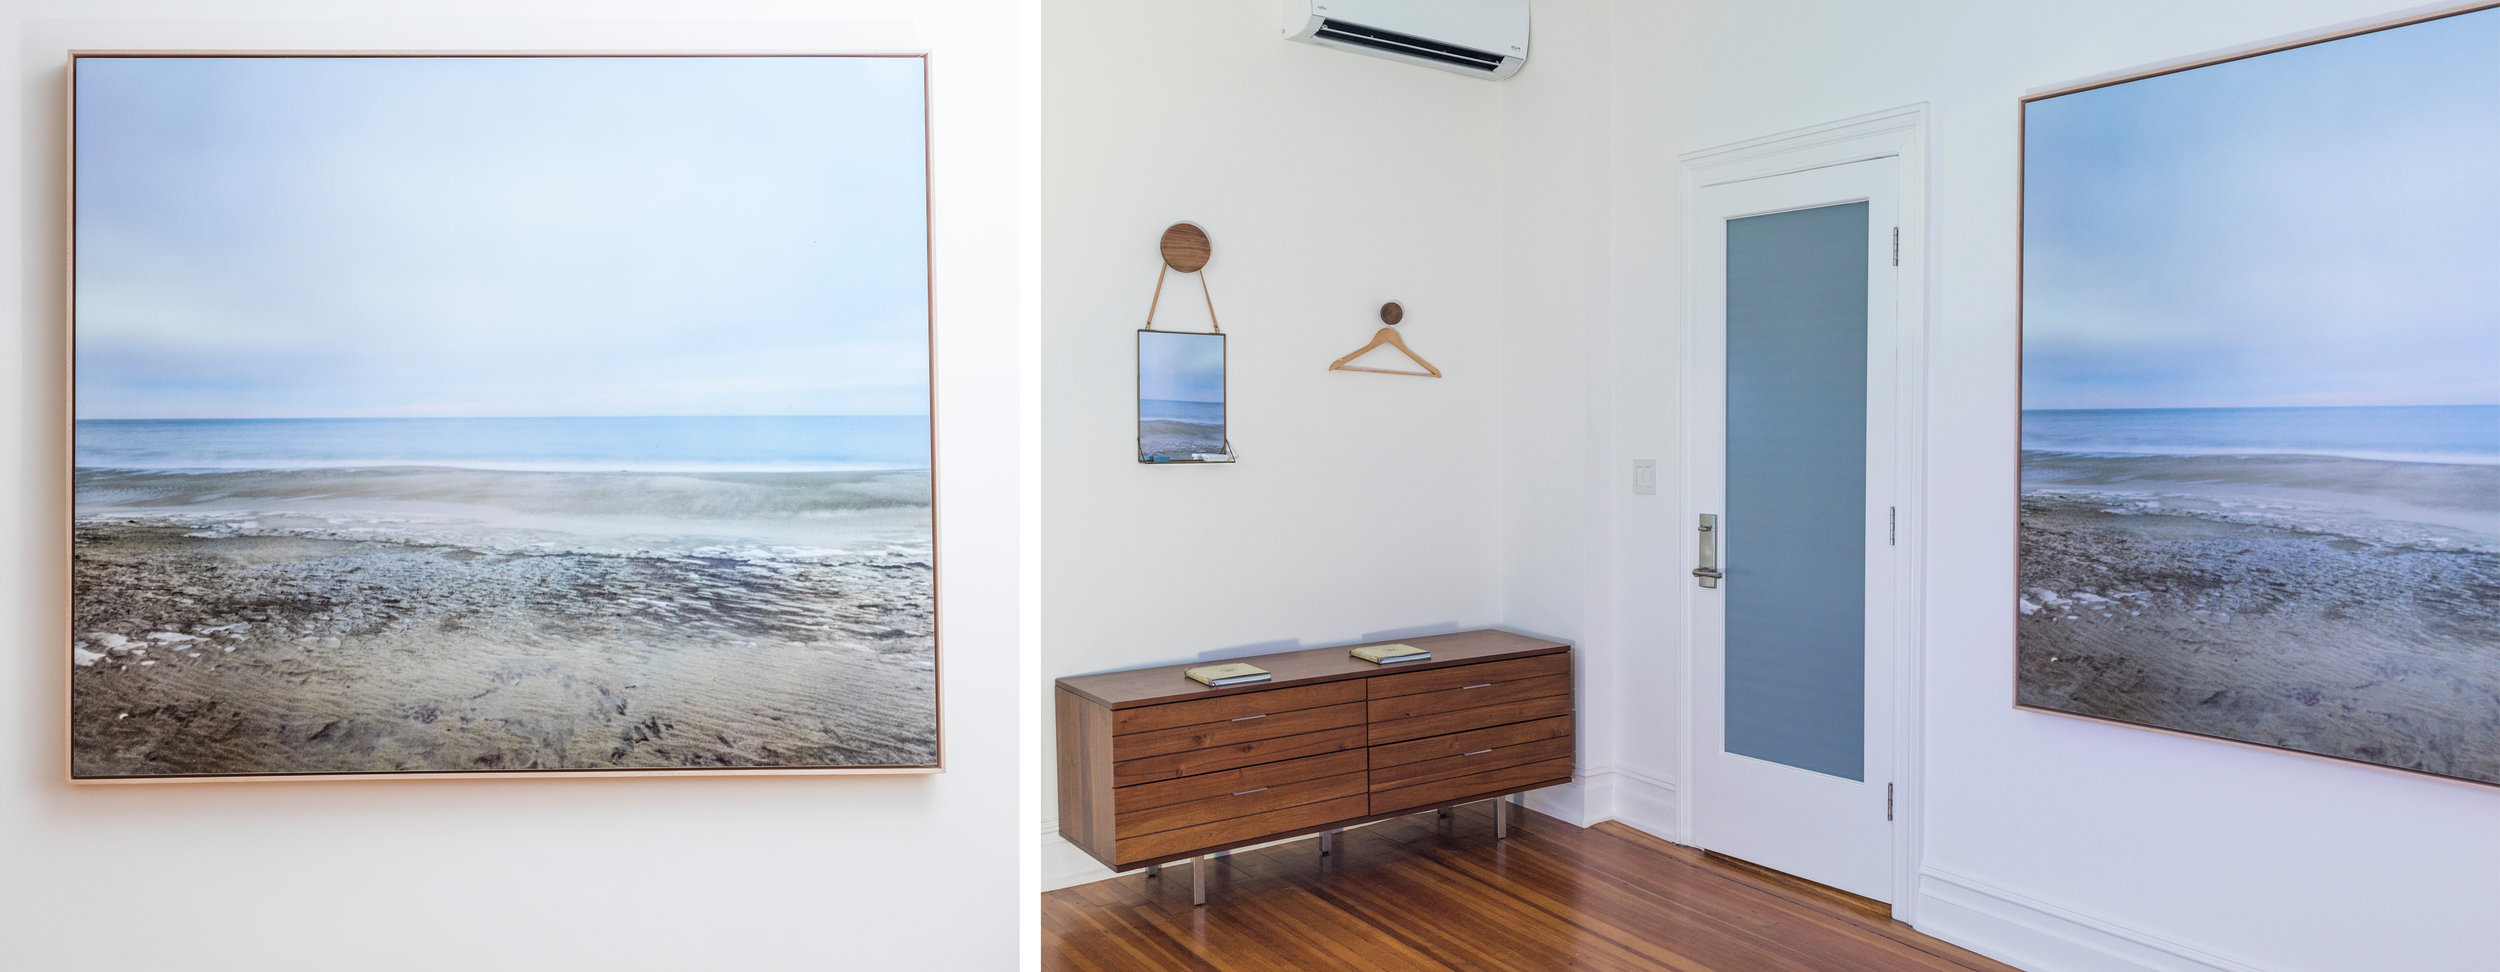 "Installation shots from The Yard (above) and Lightning Whelk (below) exhibits. Framed works are 60x75"", varnished but unglazed (no glass), float-framed with oak. Inquire for more details."